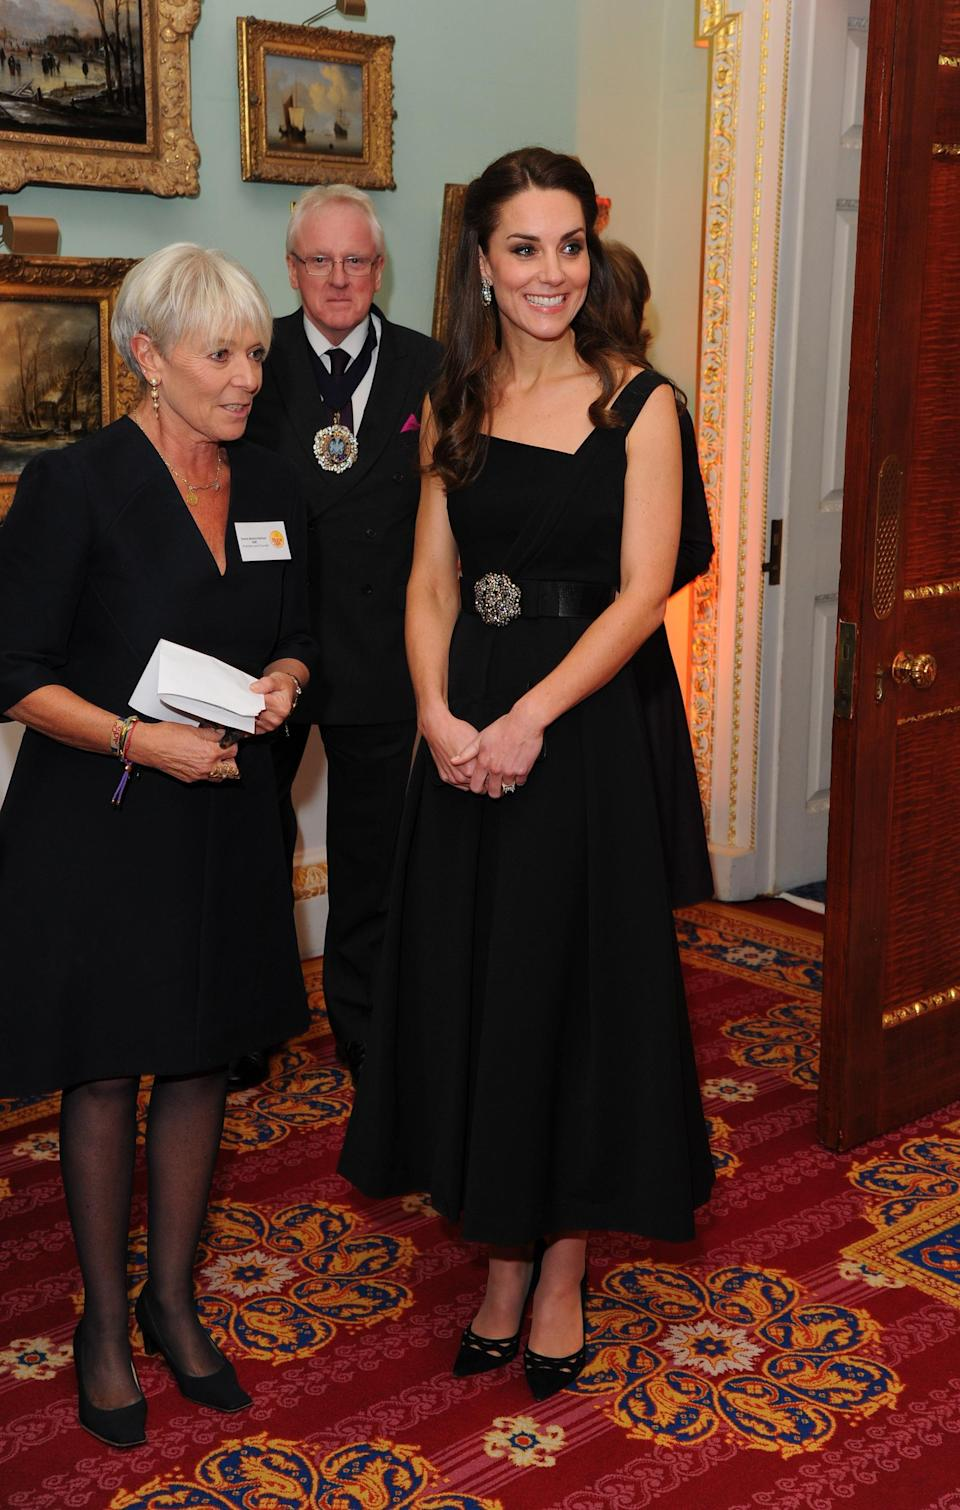 Kate Middleton in a black Preen by Thornton Bregazzi dress at a London charity event in 2016. (Photo: Getty Images)